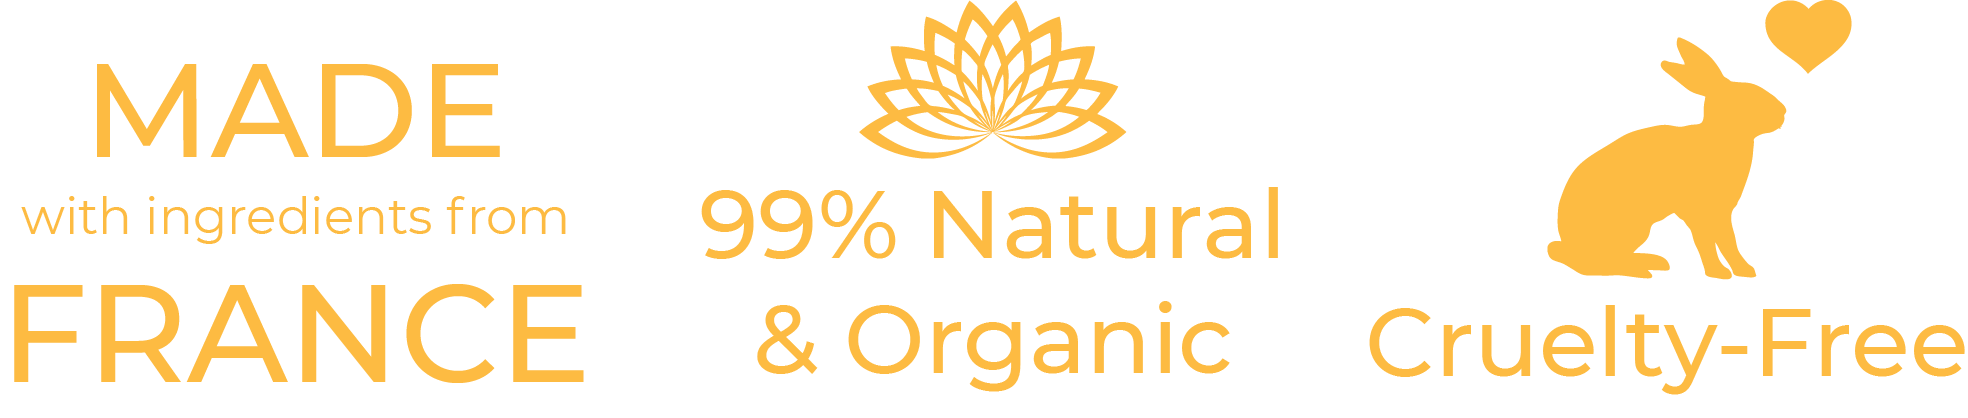 cruelty free love animals vegan made in france organic natural ingredients